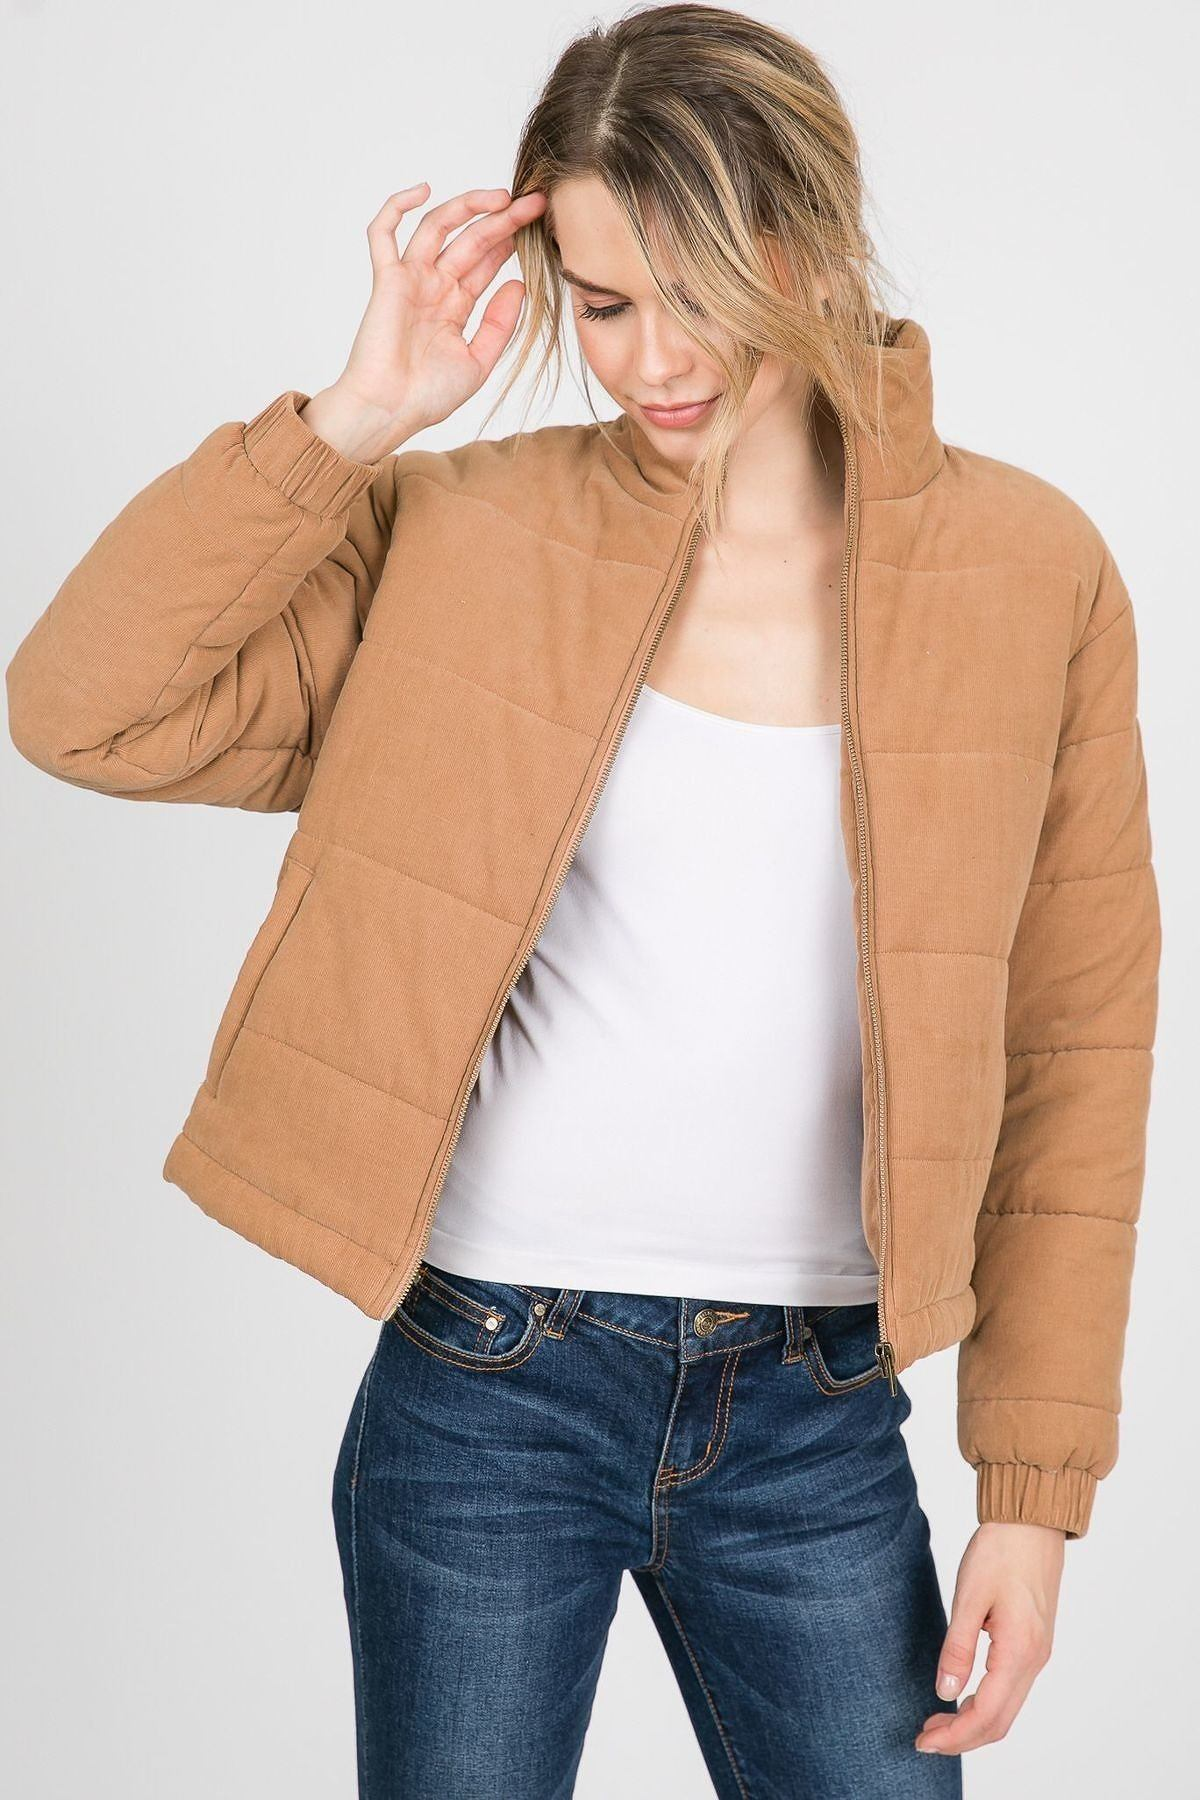 Puffy Long Sleeves Jacket - Absolute Fashion 2020